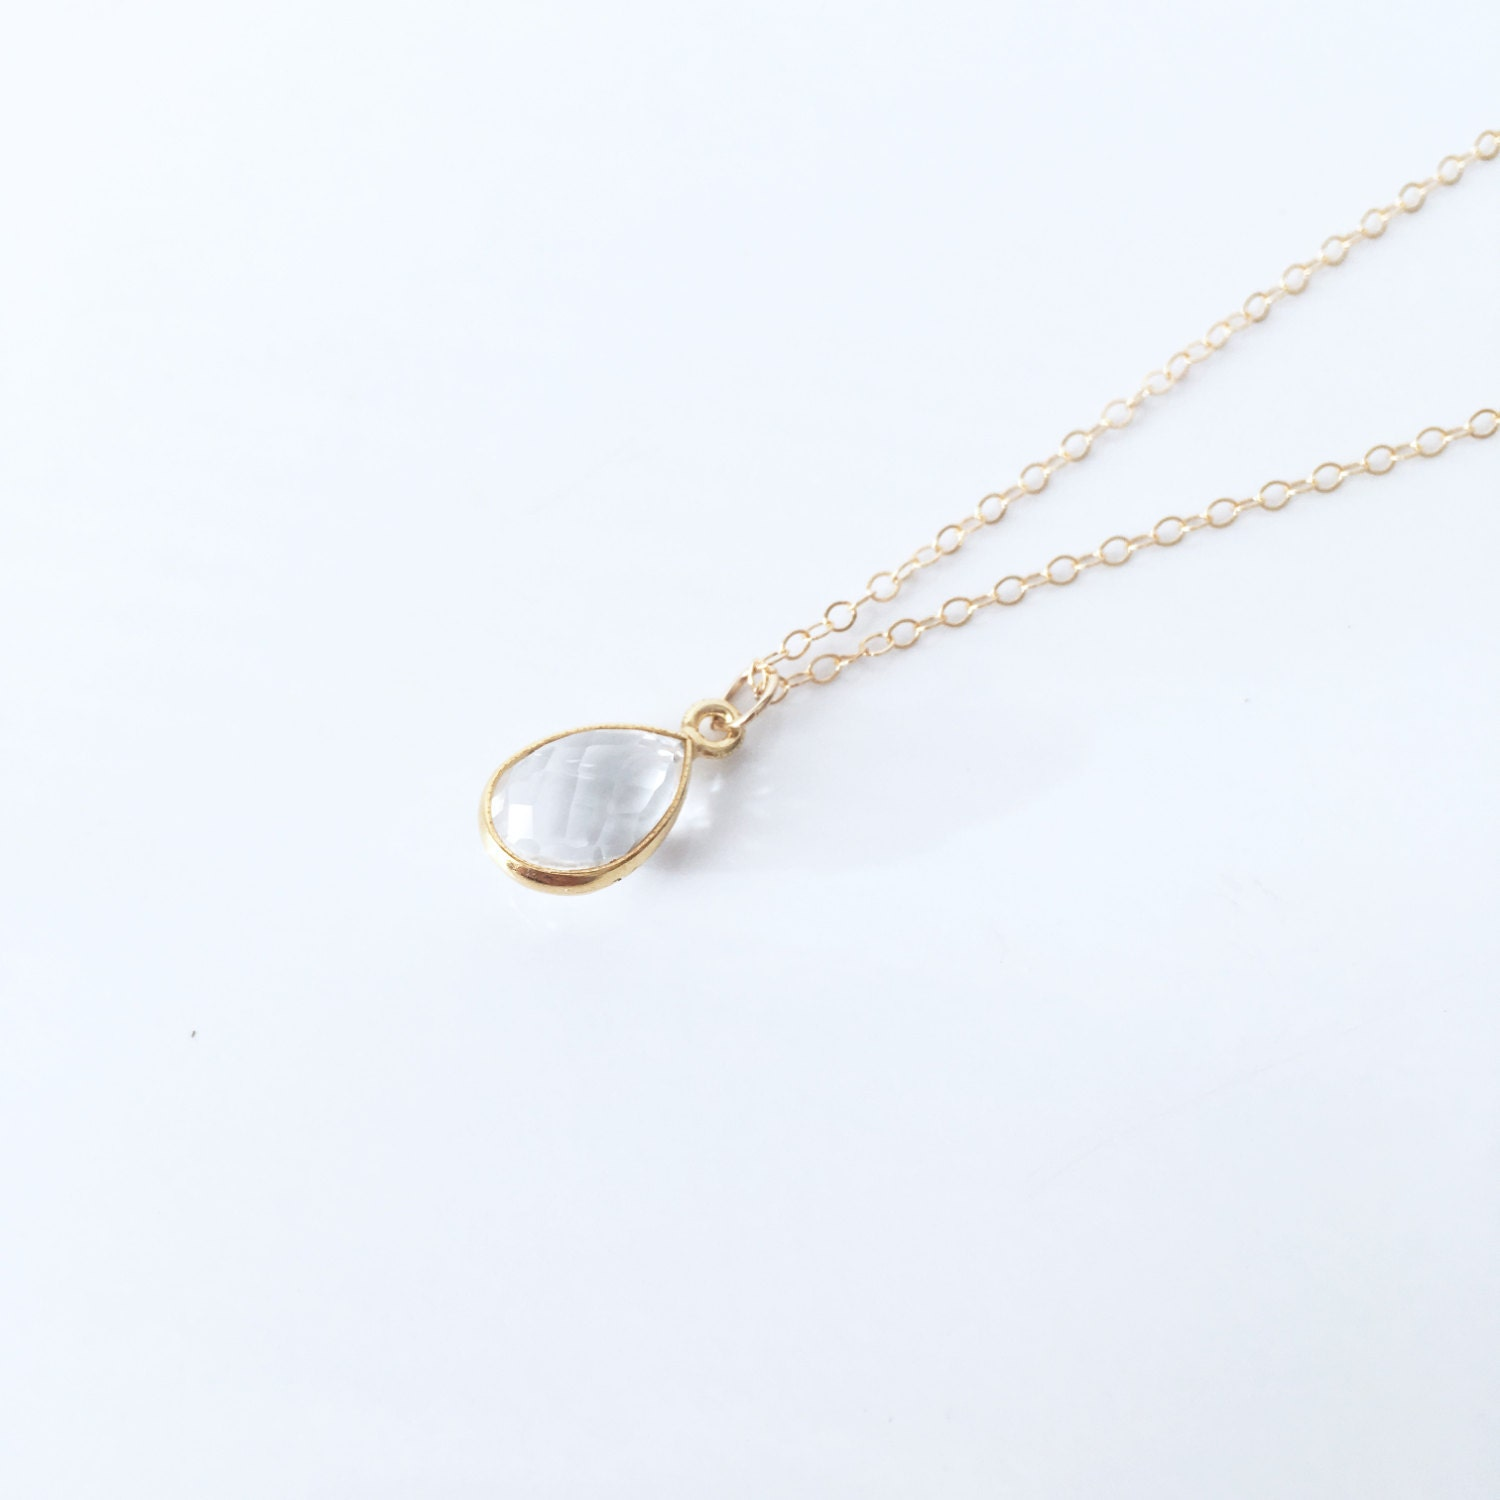 choker for il aden her gold jewelry products gift tiny fullxfull diamond minimal necklace claire under clear sparkling swarovski filled round pebble crystal dainty gem